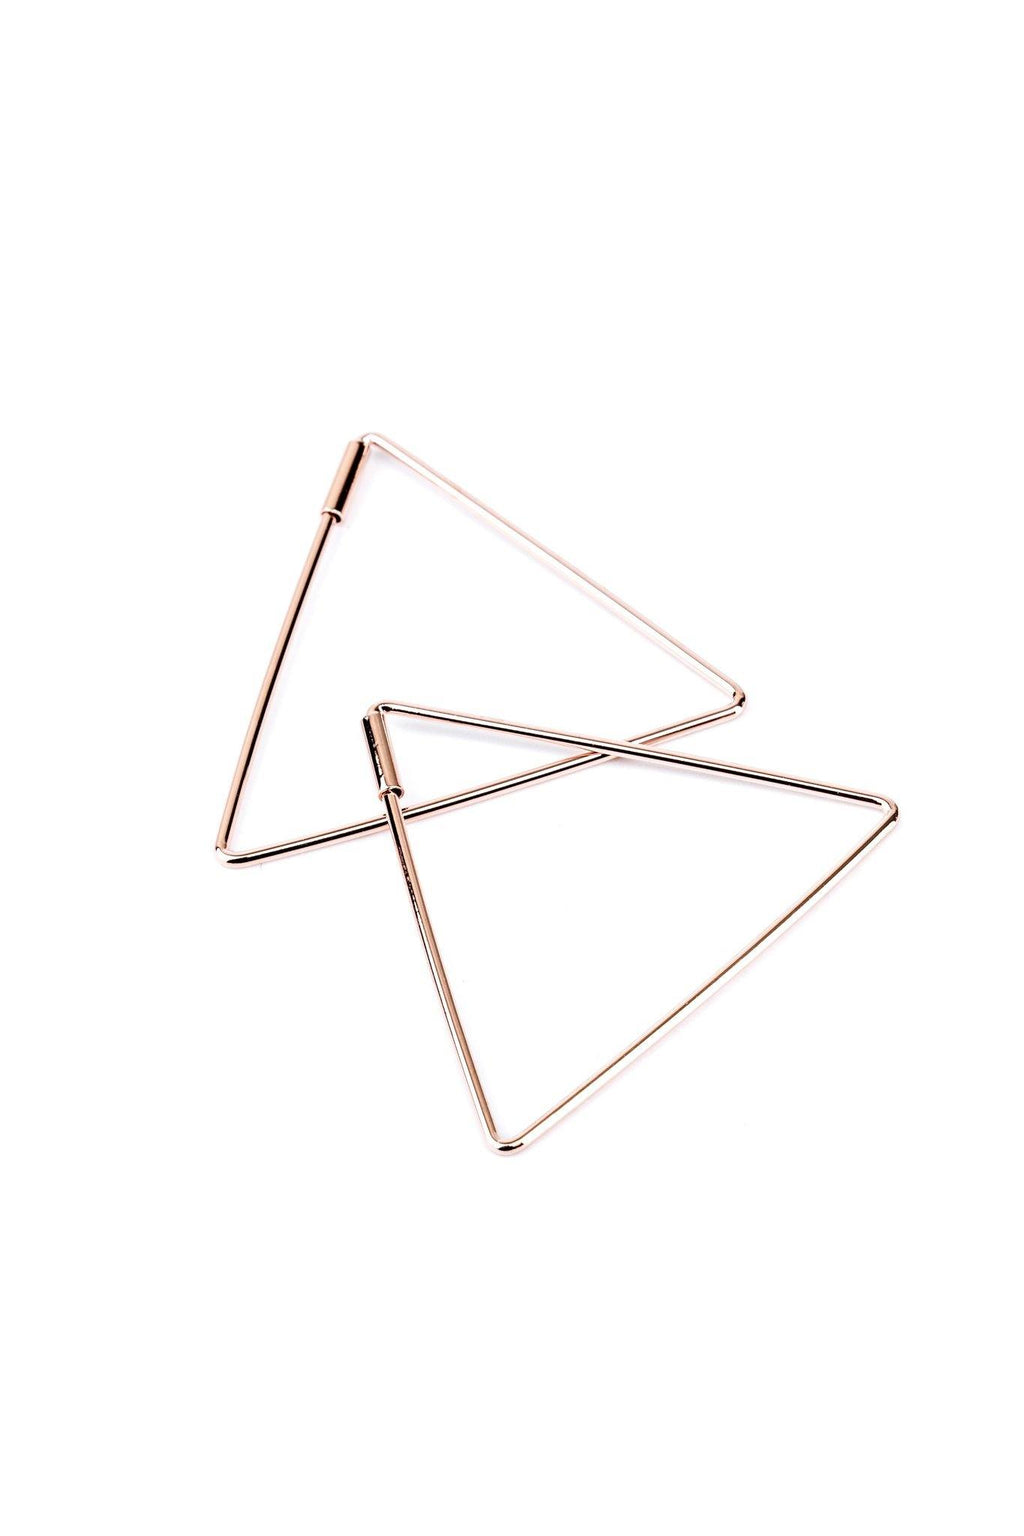 These are triangle earrings.  They are made with rhodium and a high-quality rose gold plating.